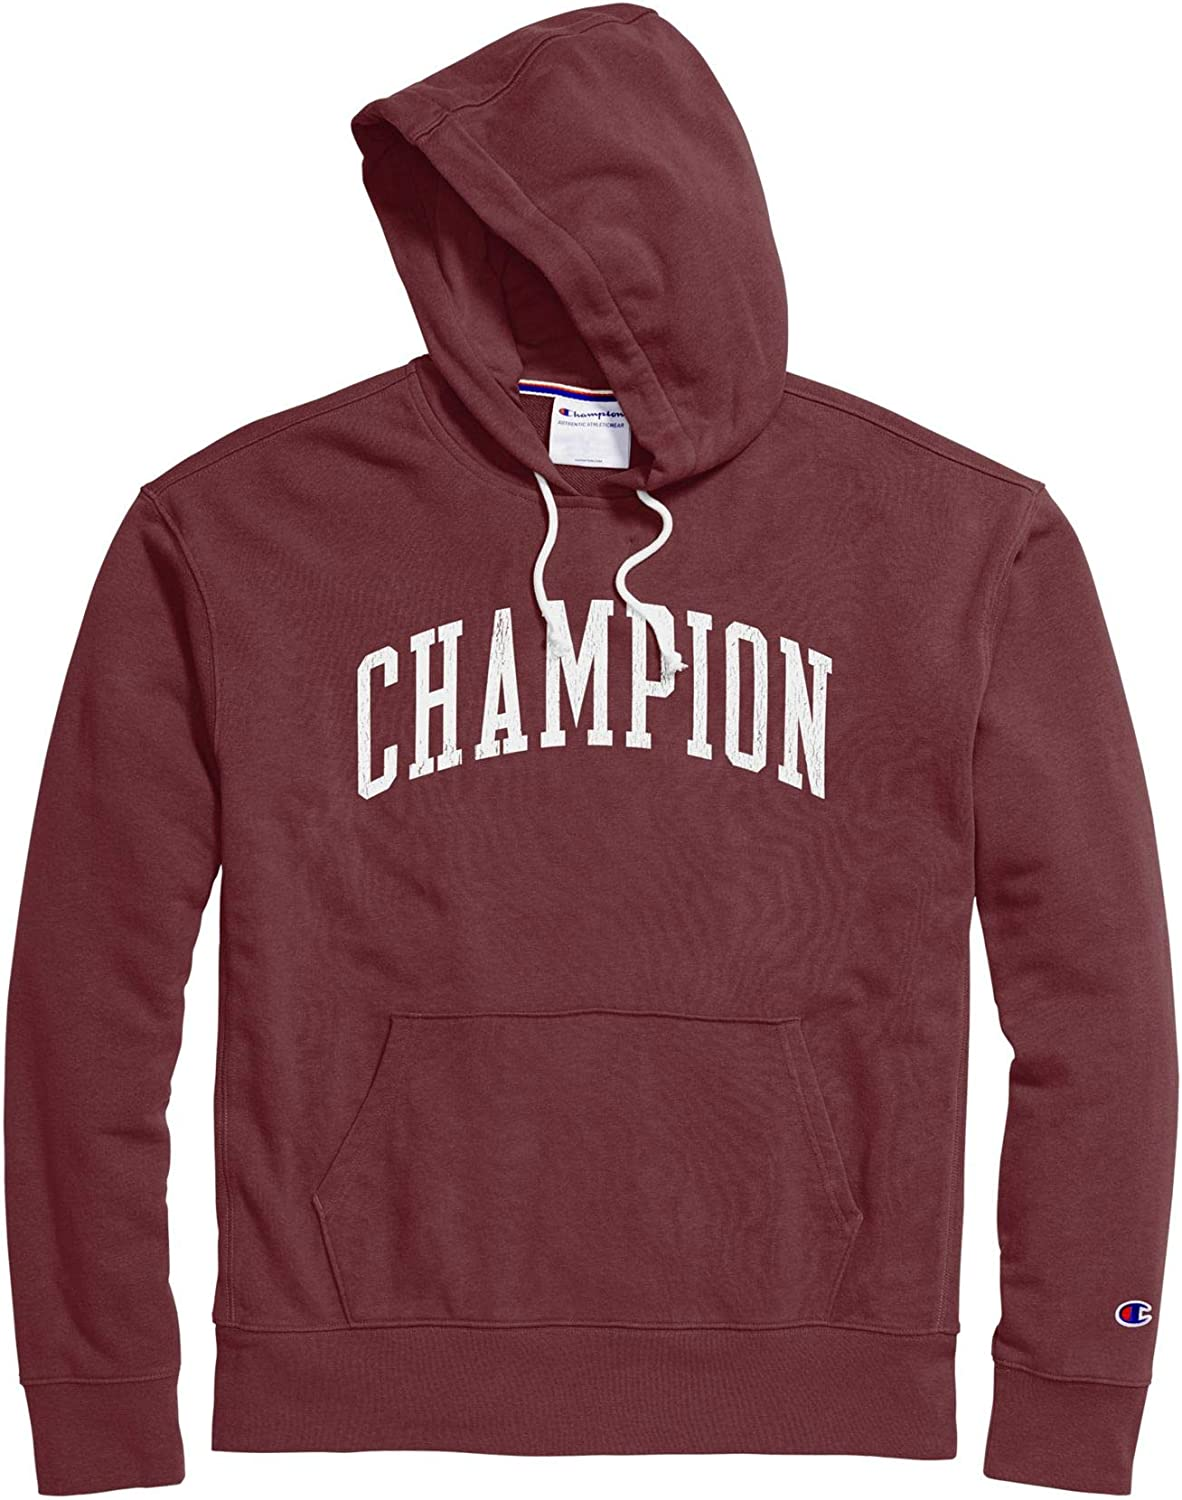 Champion Sideline Pullover Hoodie S4505